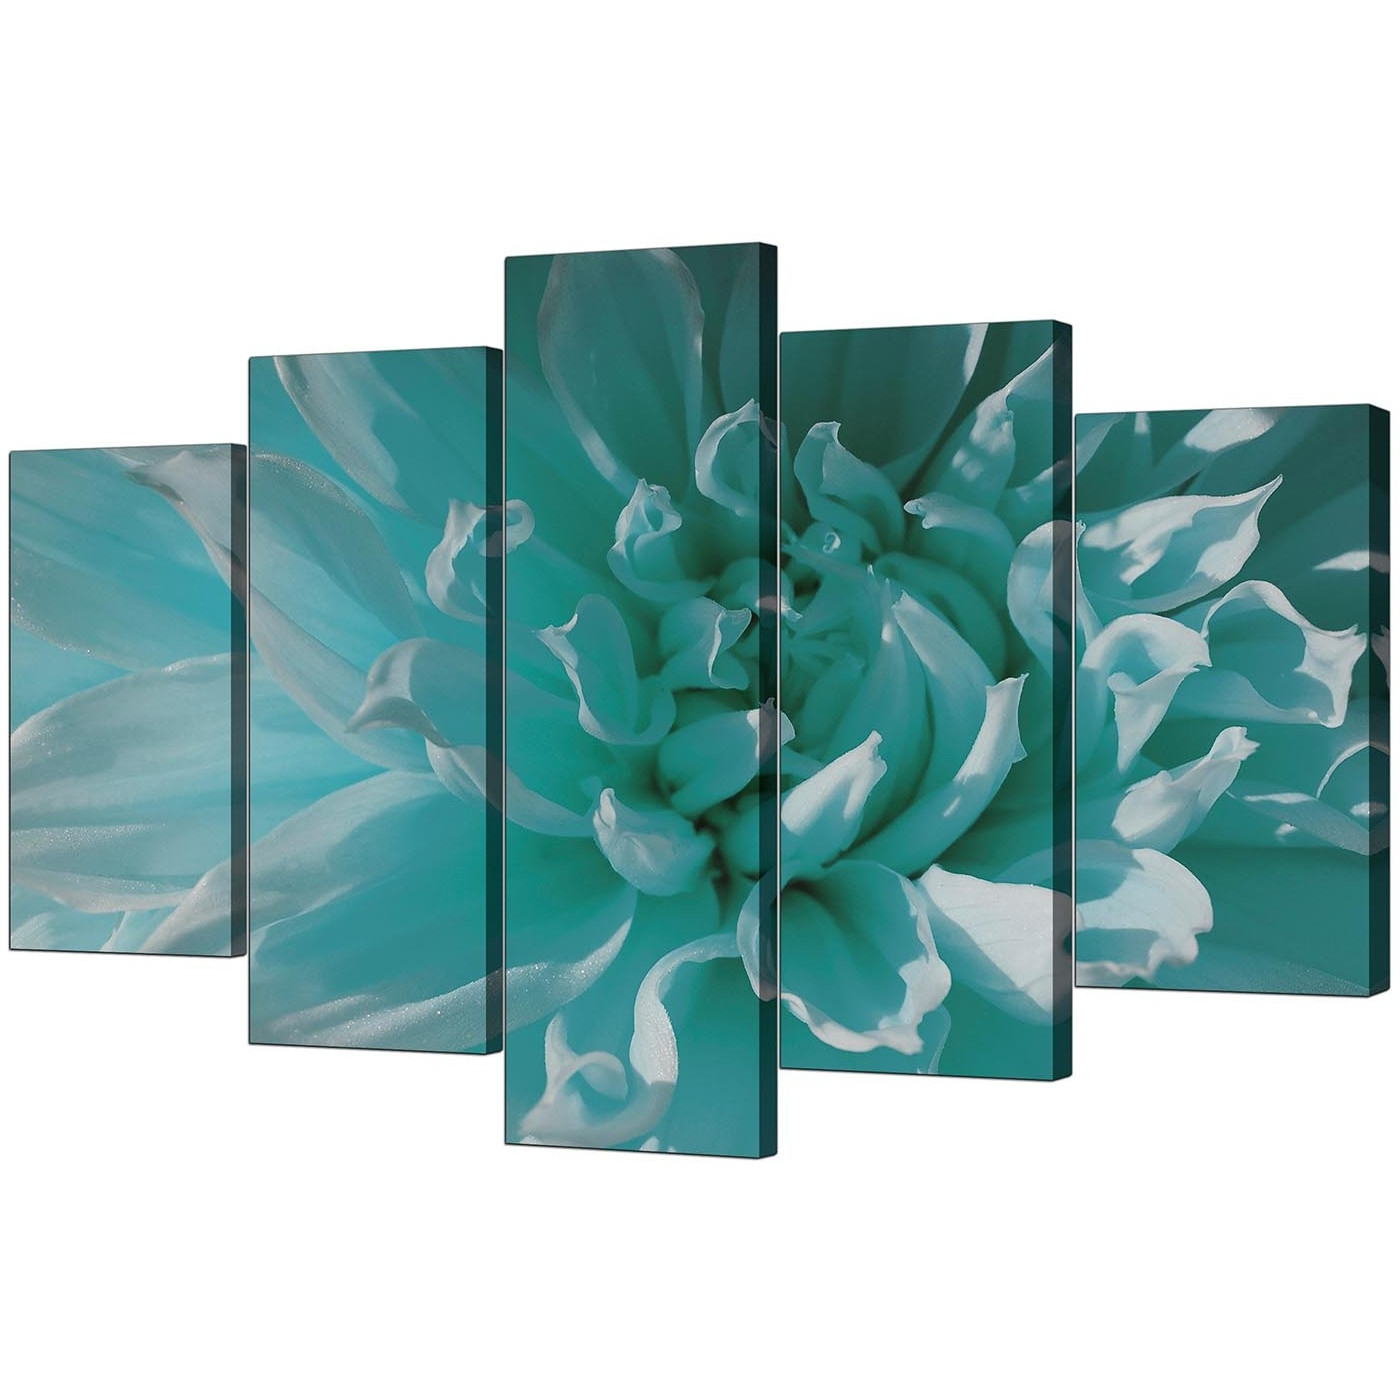 Extra Large Flower Canvas Wall Art 5 Piece In Teal Regarding Current Teal Wall Art (View 15 of 15)